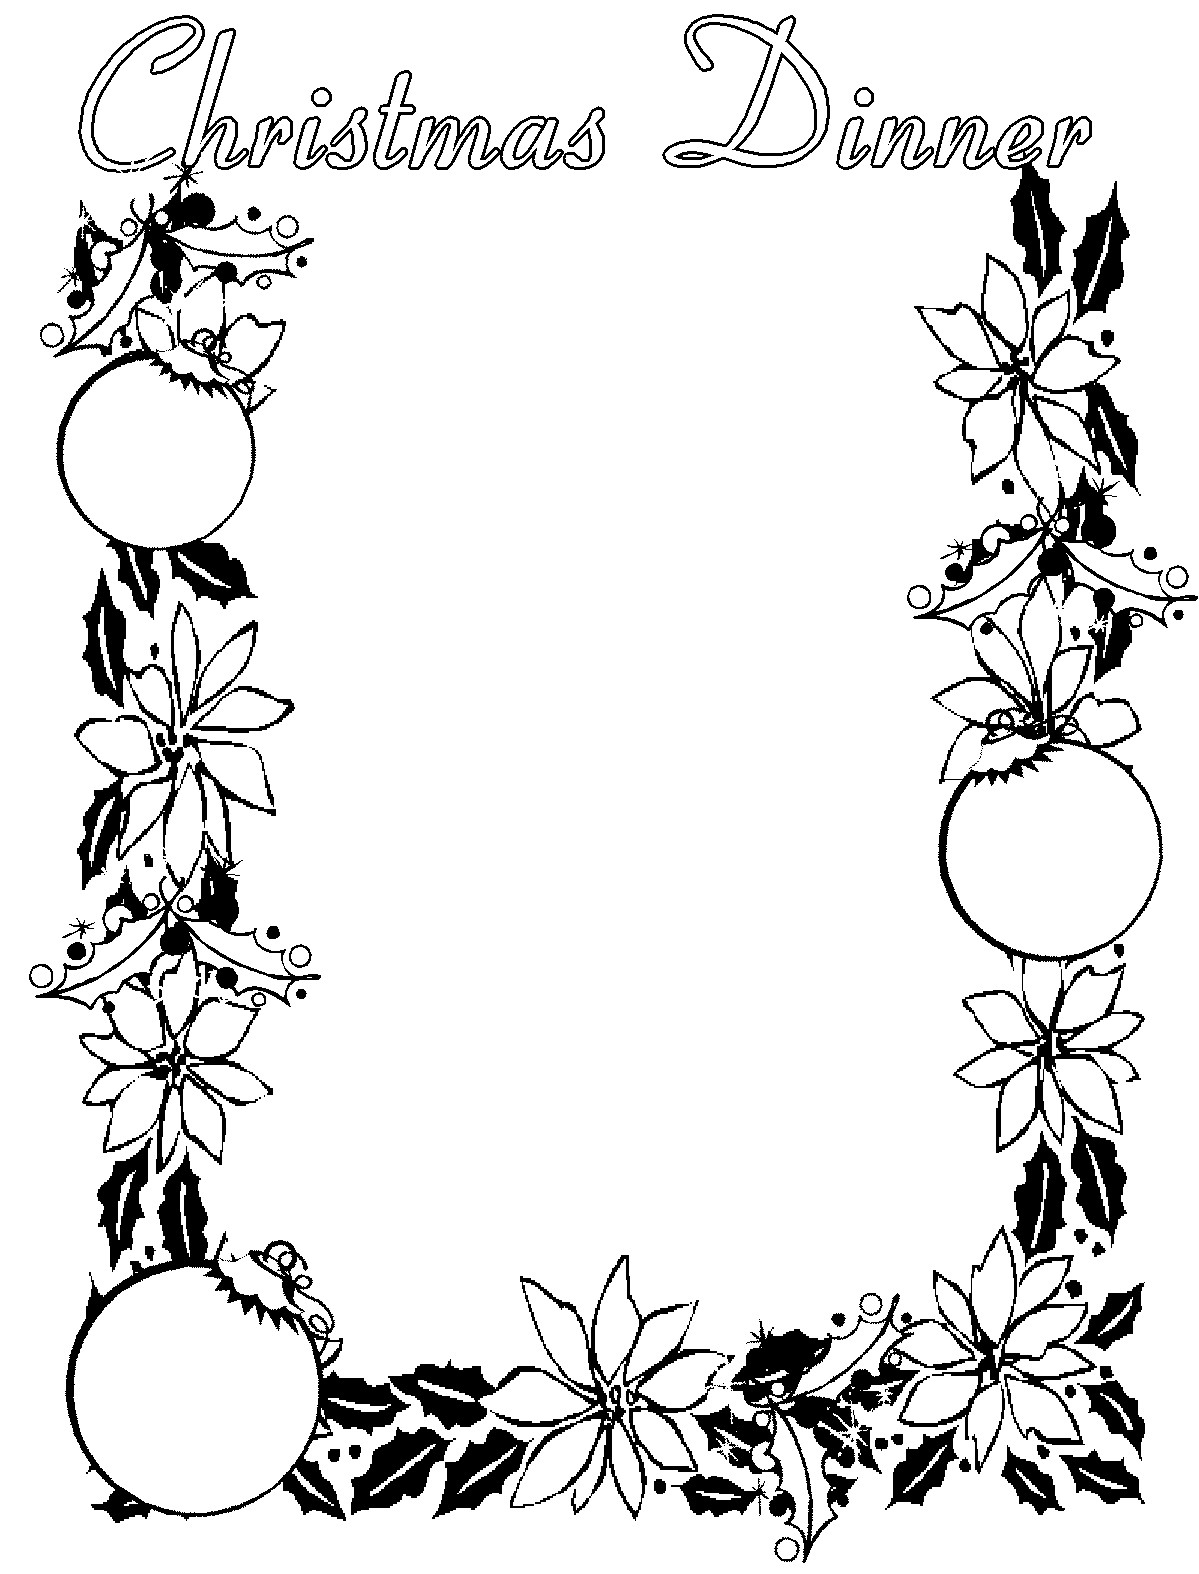 1199x1574 Thanksgiving Border Clipart In Black And White 101 Clip Art